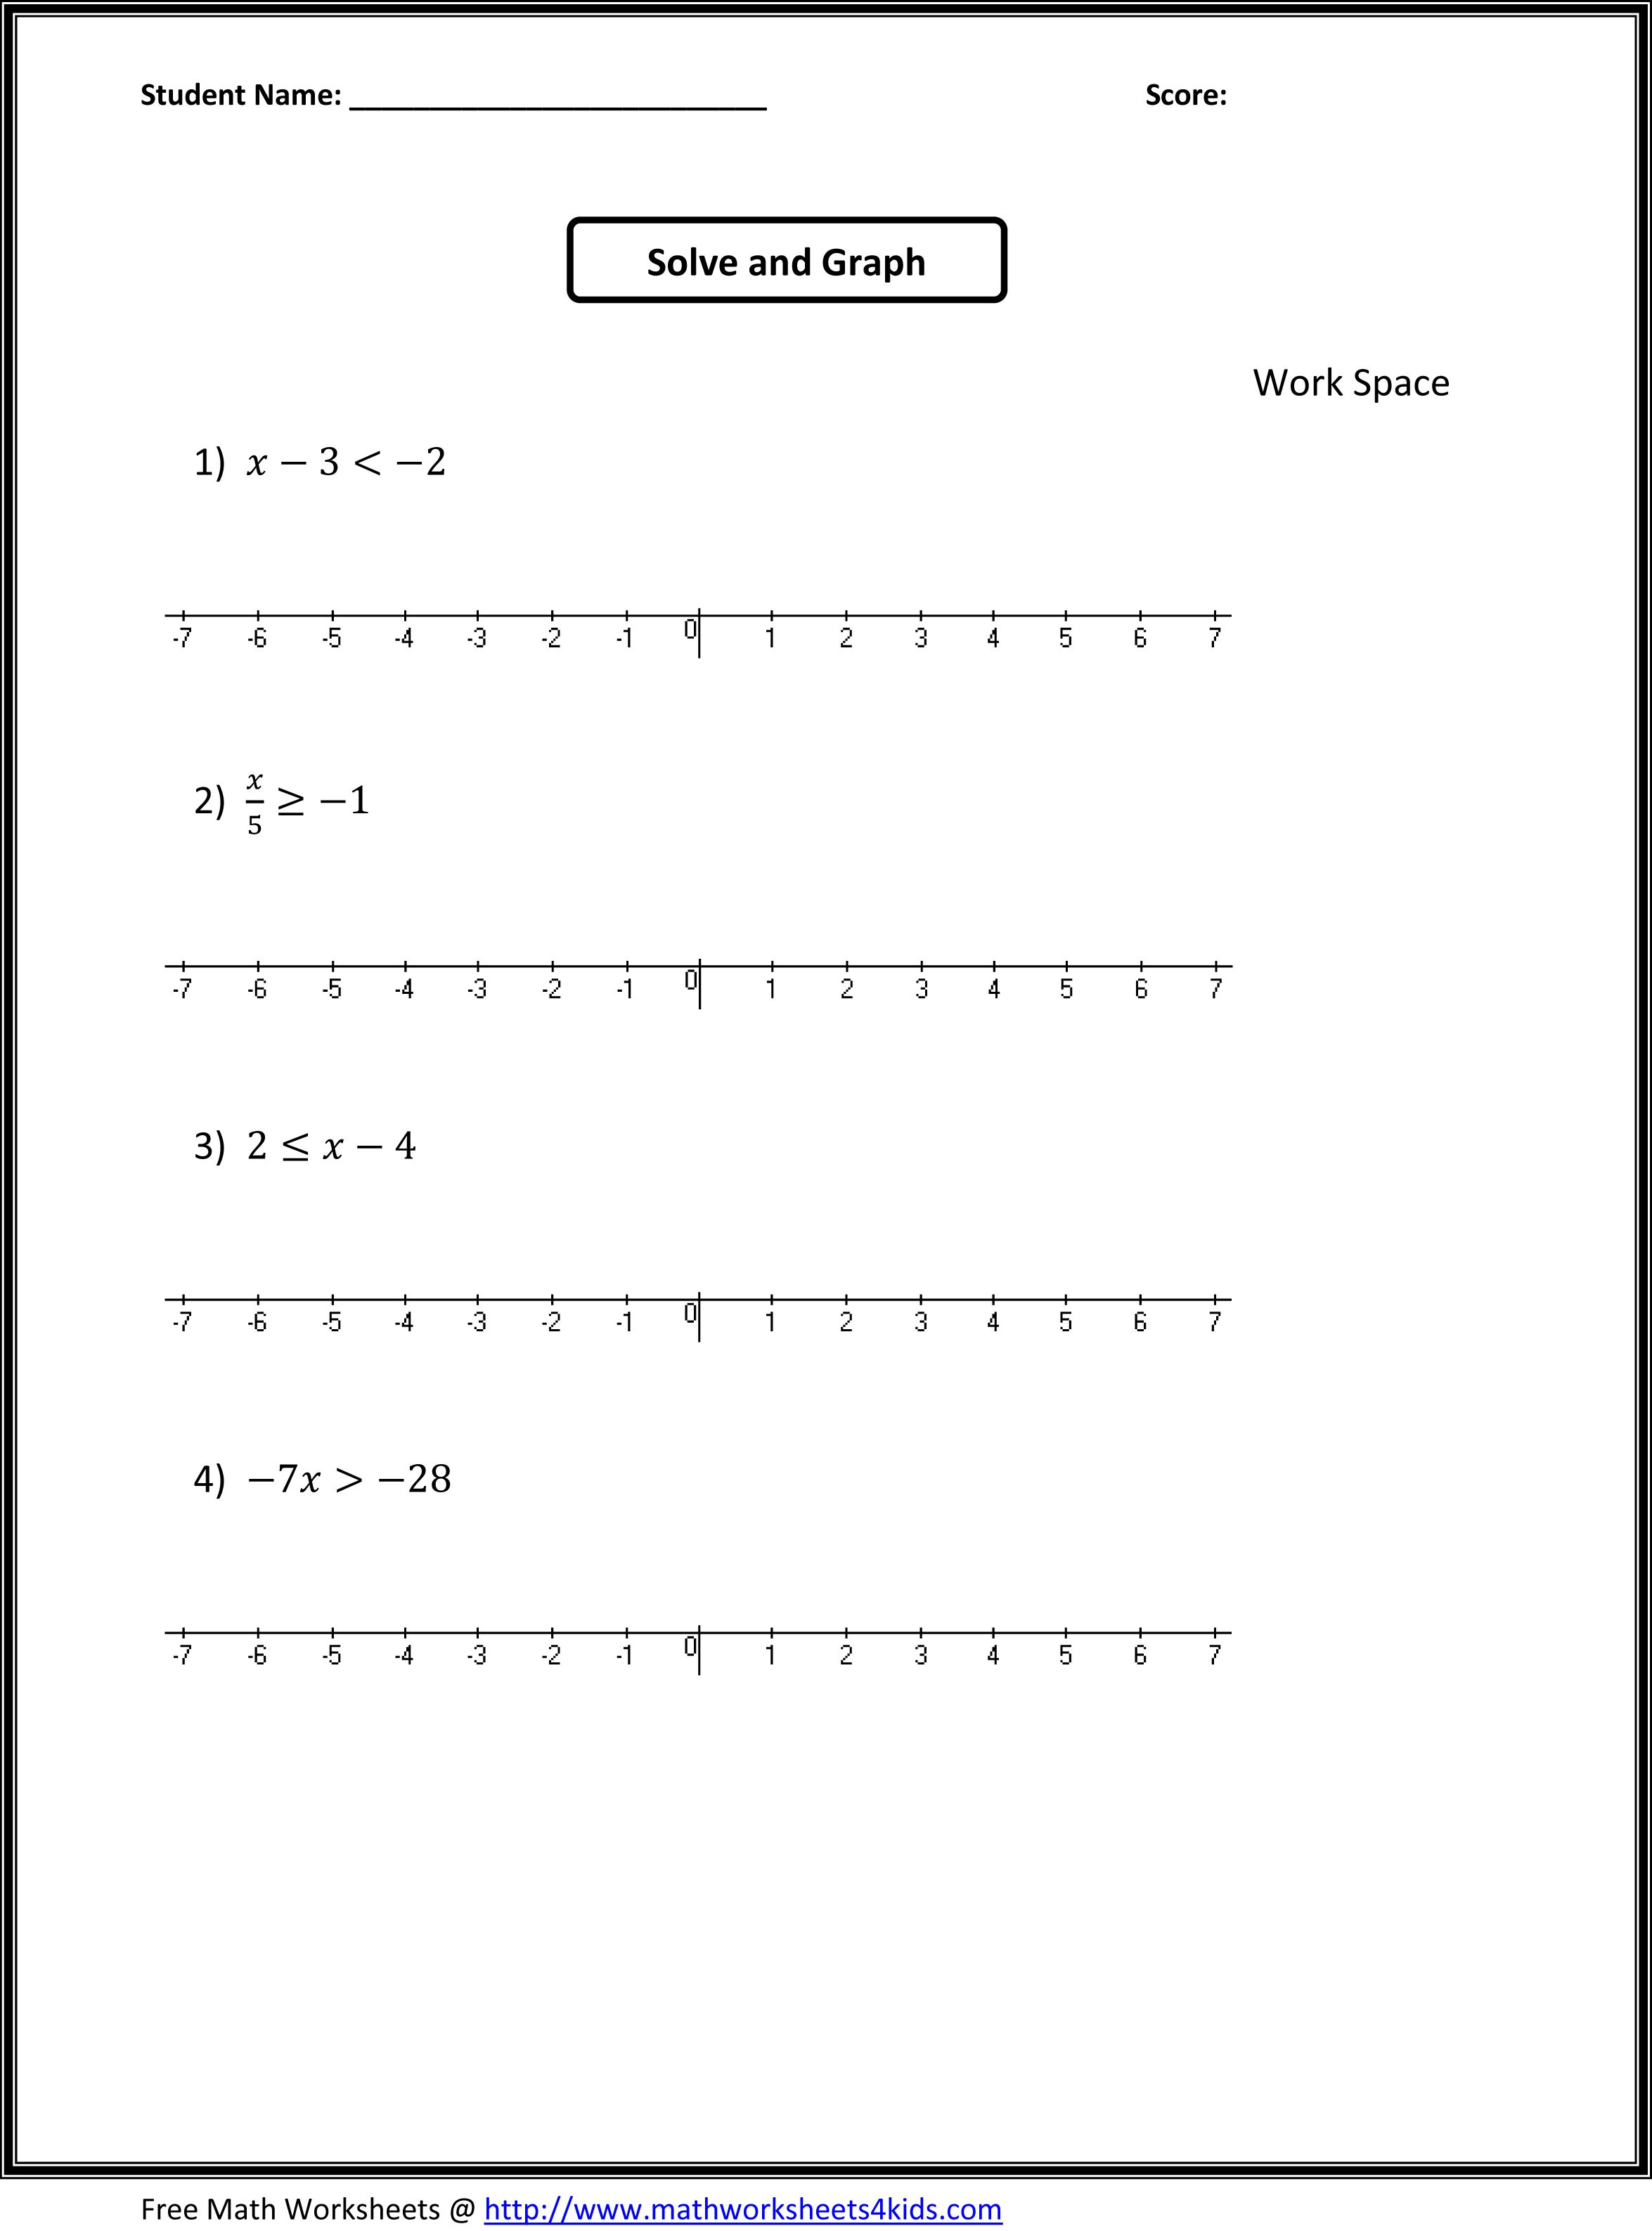 Printables 7th Grade Math Worksheets Printable 7th grade math worksheets value absolute algebra worksheets